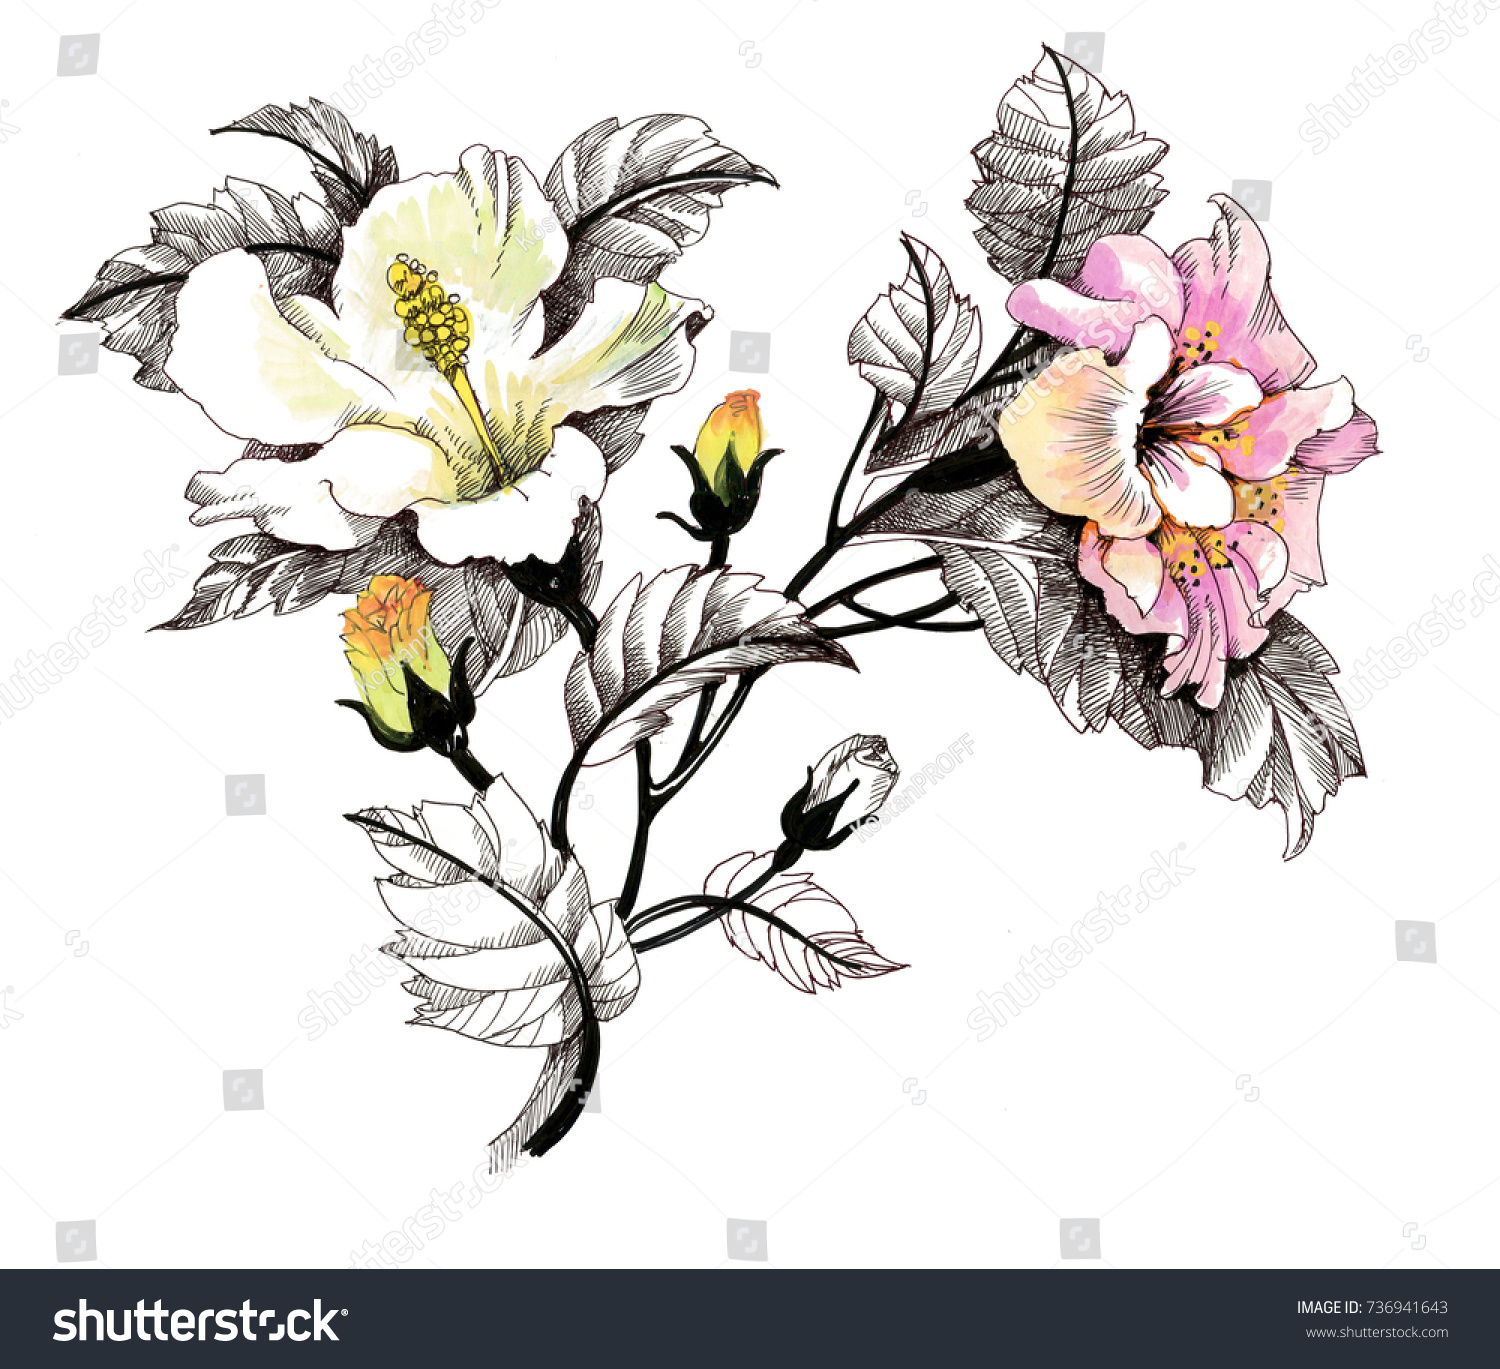 Hand Drawn Painting With Colorful Flowers On White Background Ez